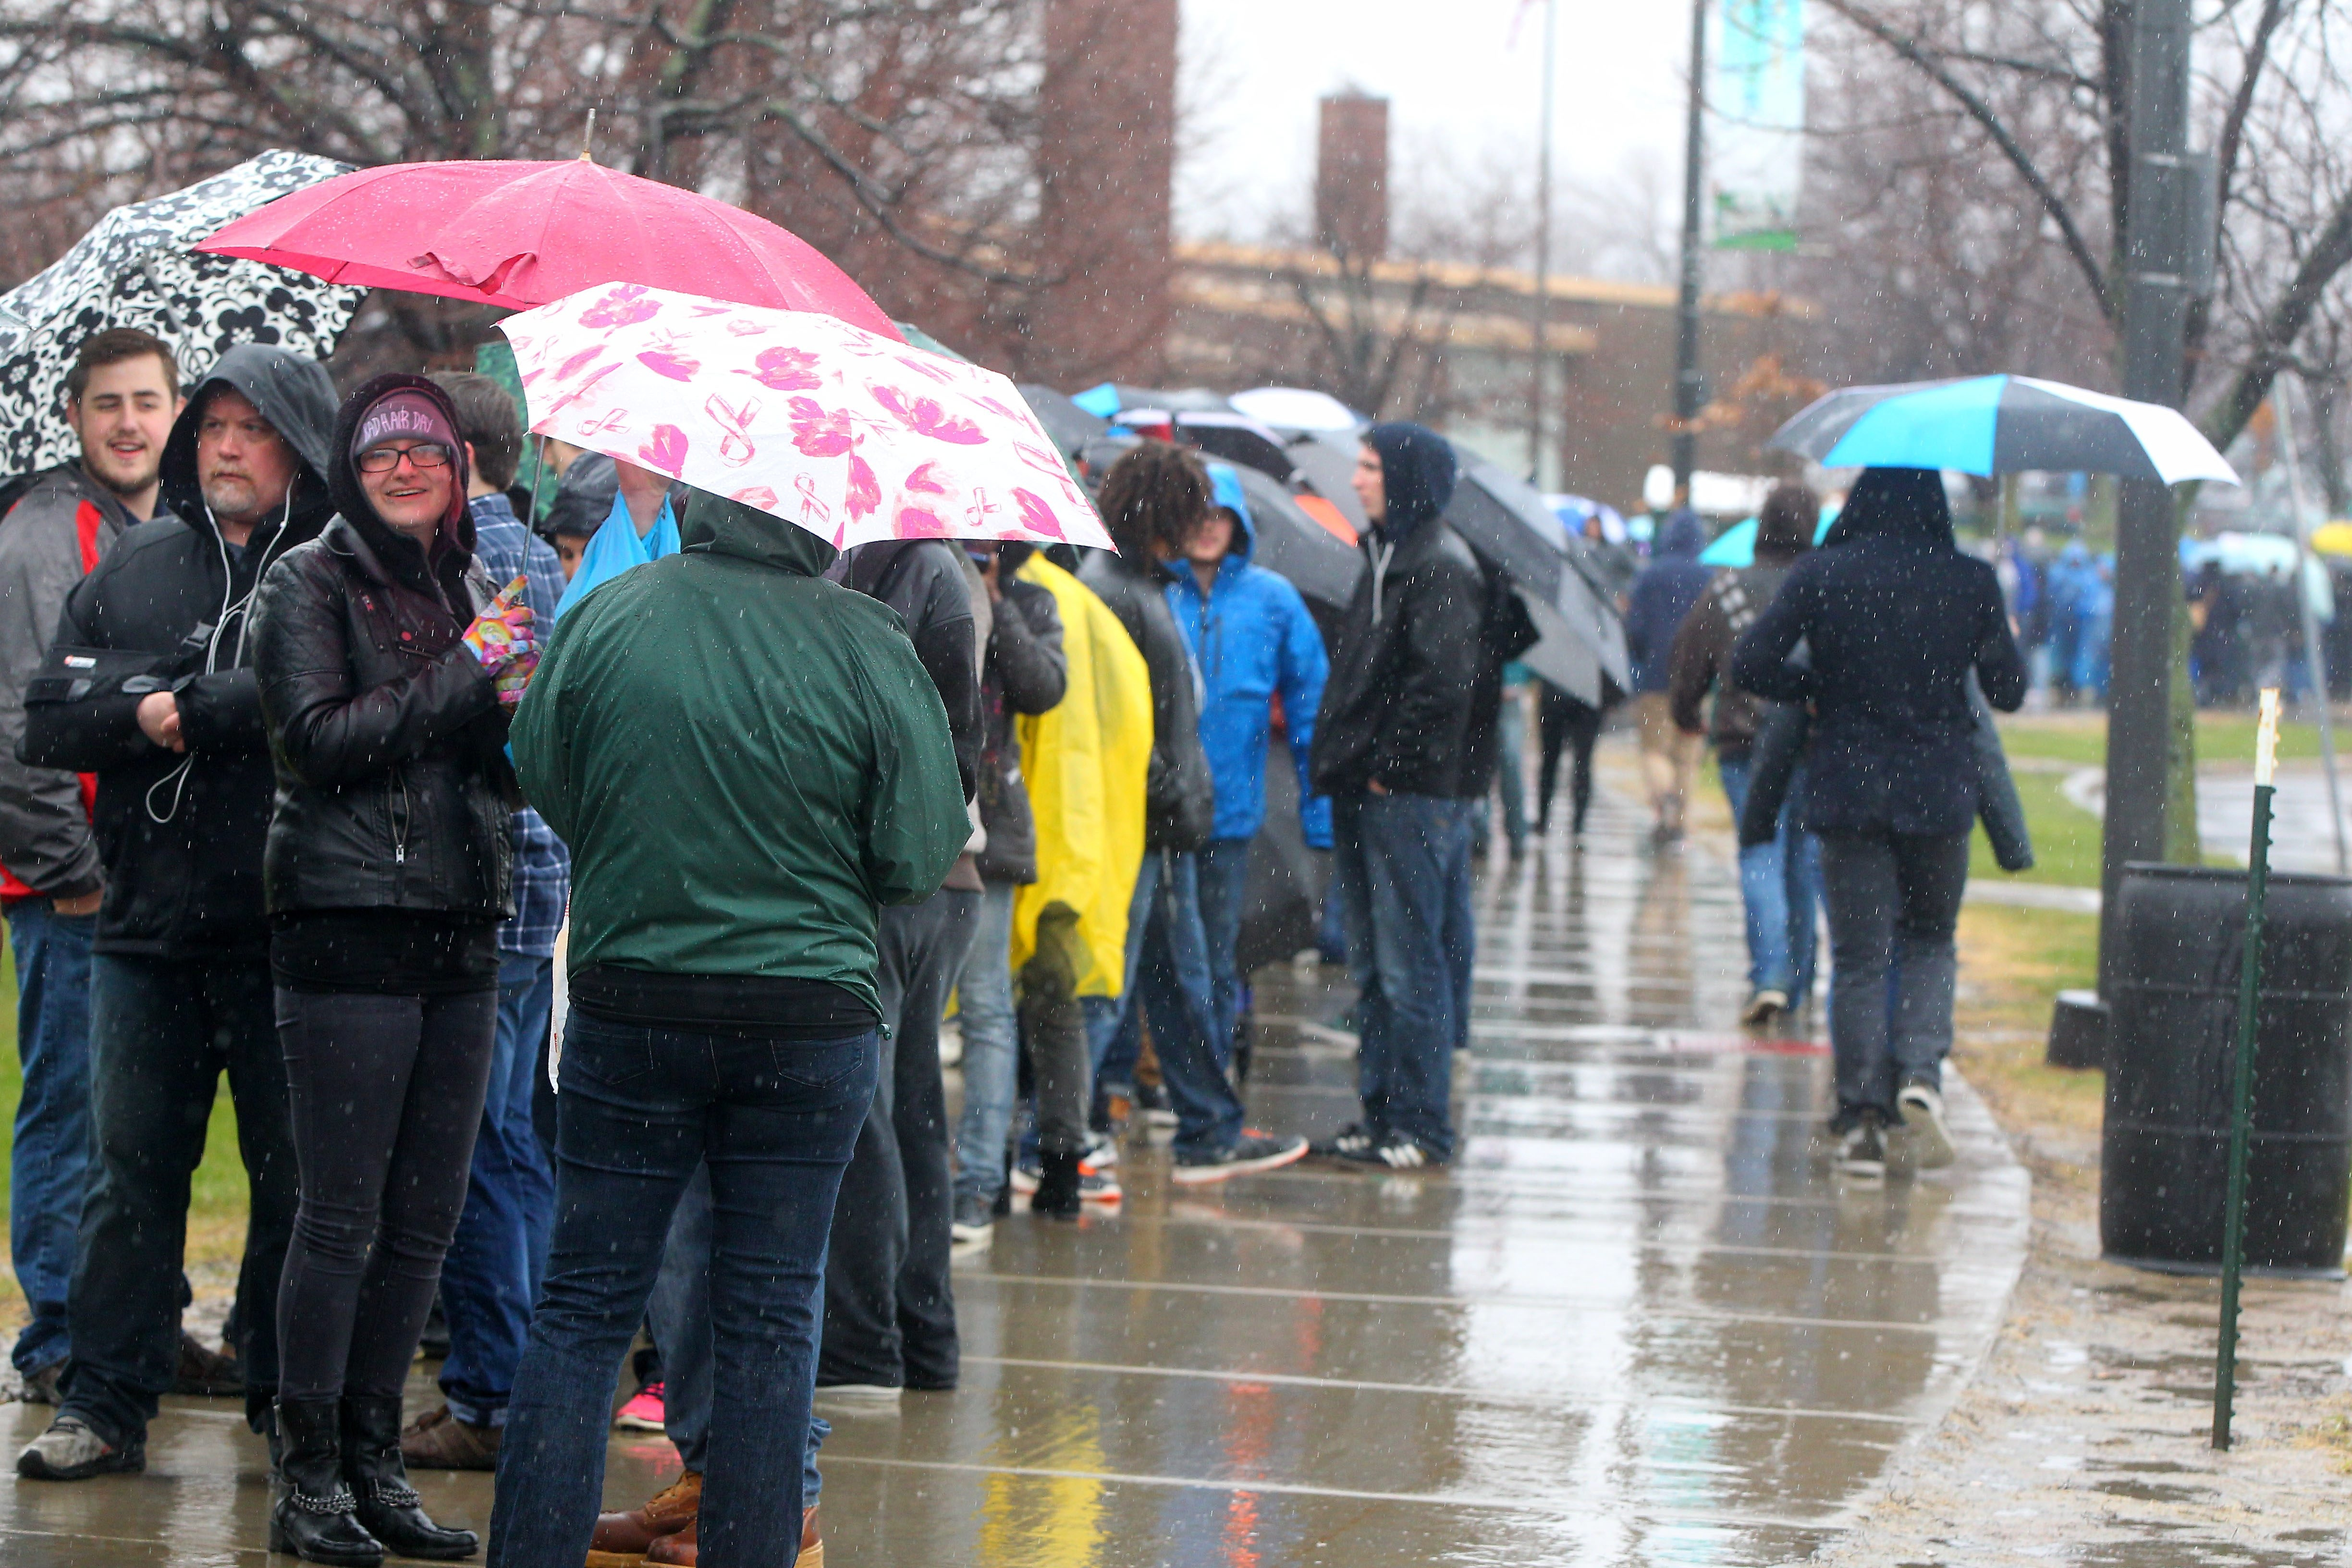 Bernie Sanders supporters line up outside of Alumni Arena on the UB campus in Amherst Monday, April 11, 2016.   (Mark Mulville/Buffalo News)